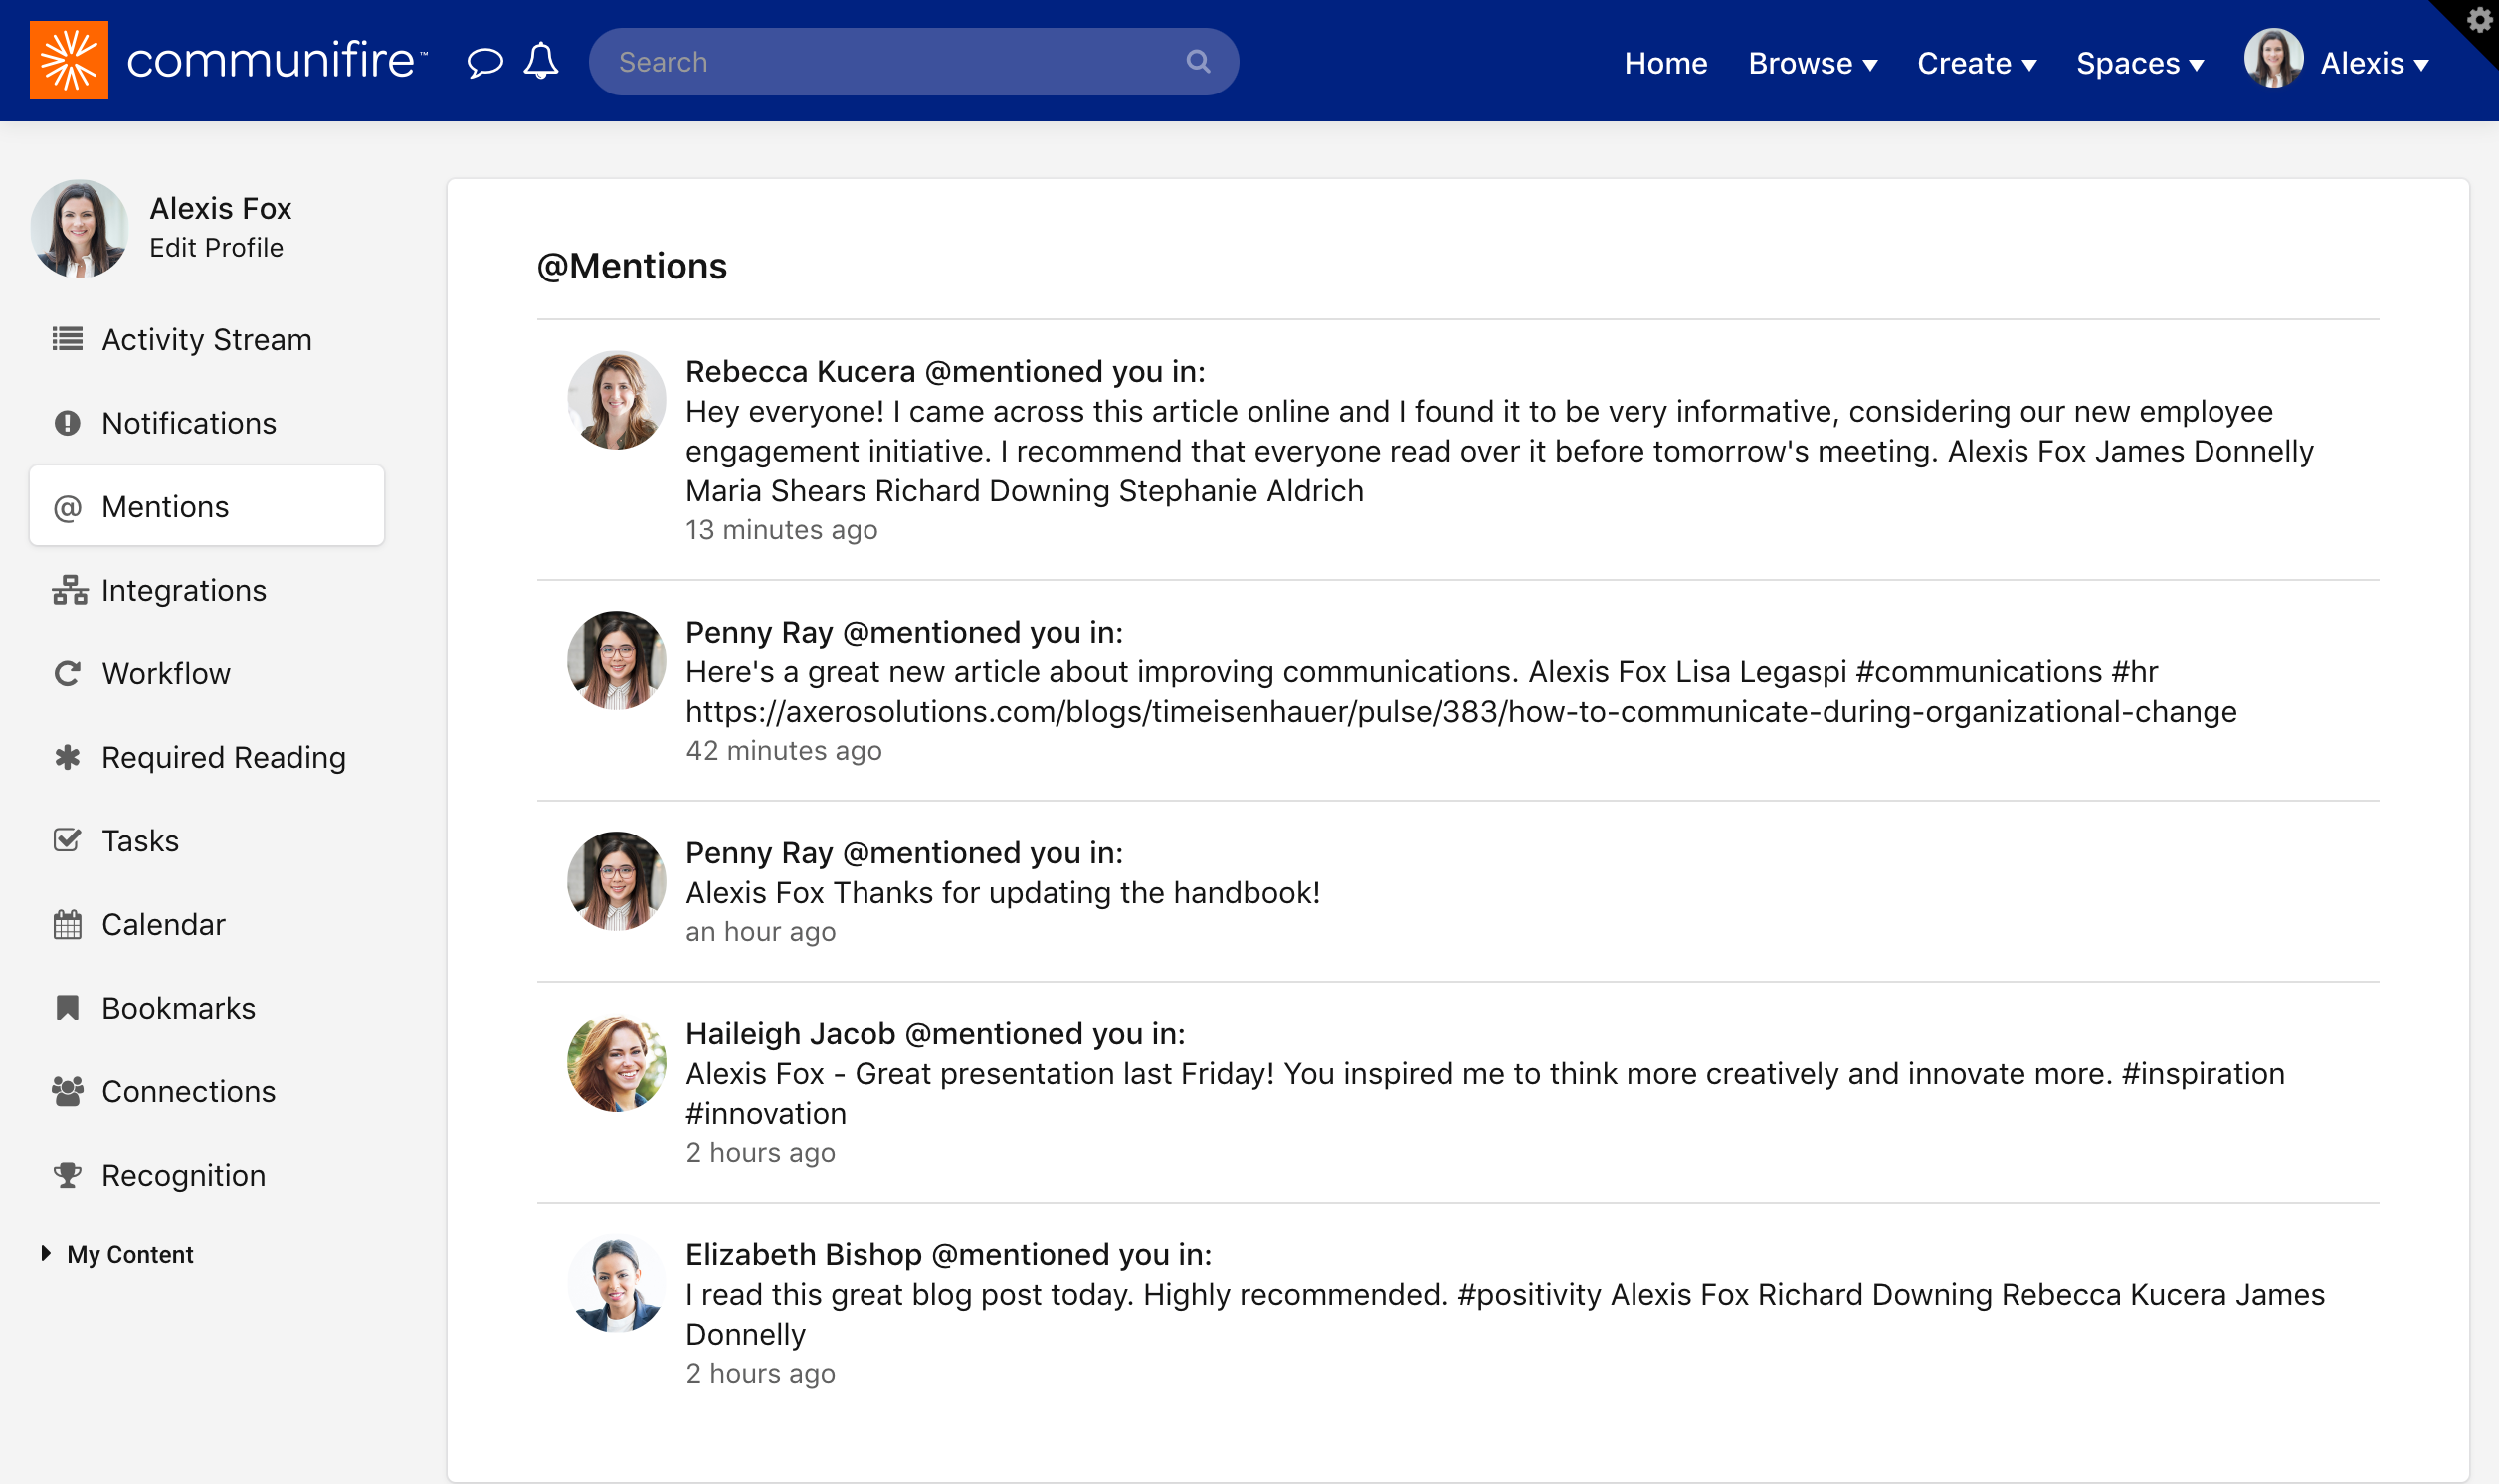 Mentions page